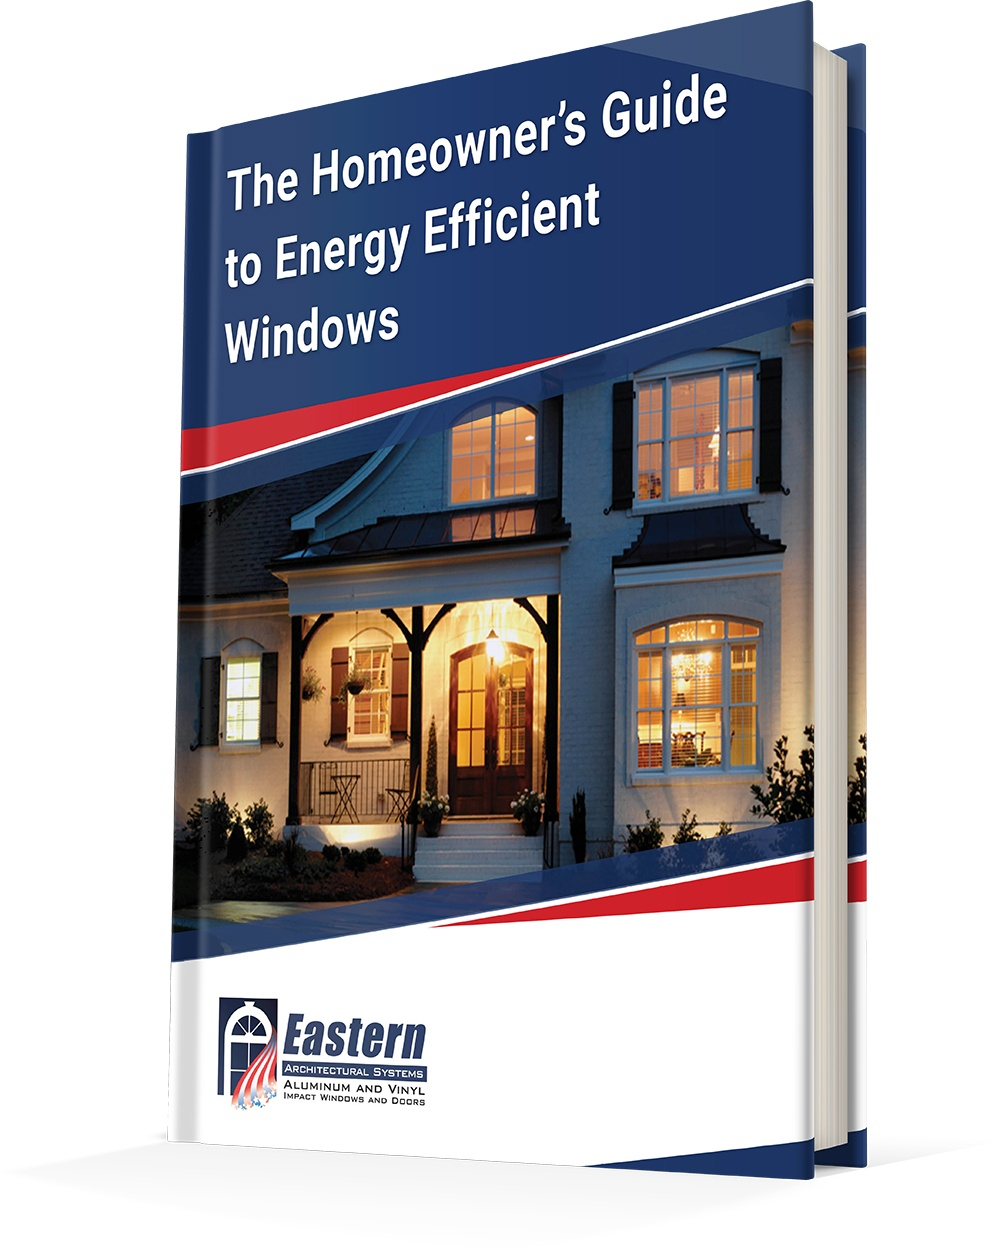 Homeowners guide to energy efficient windows